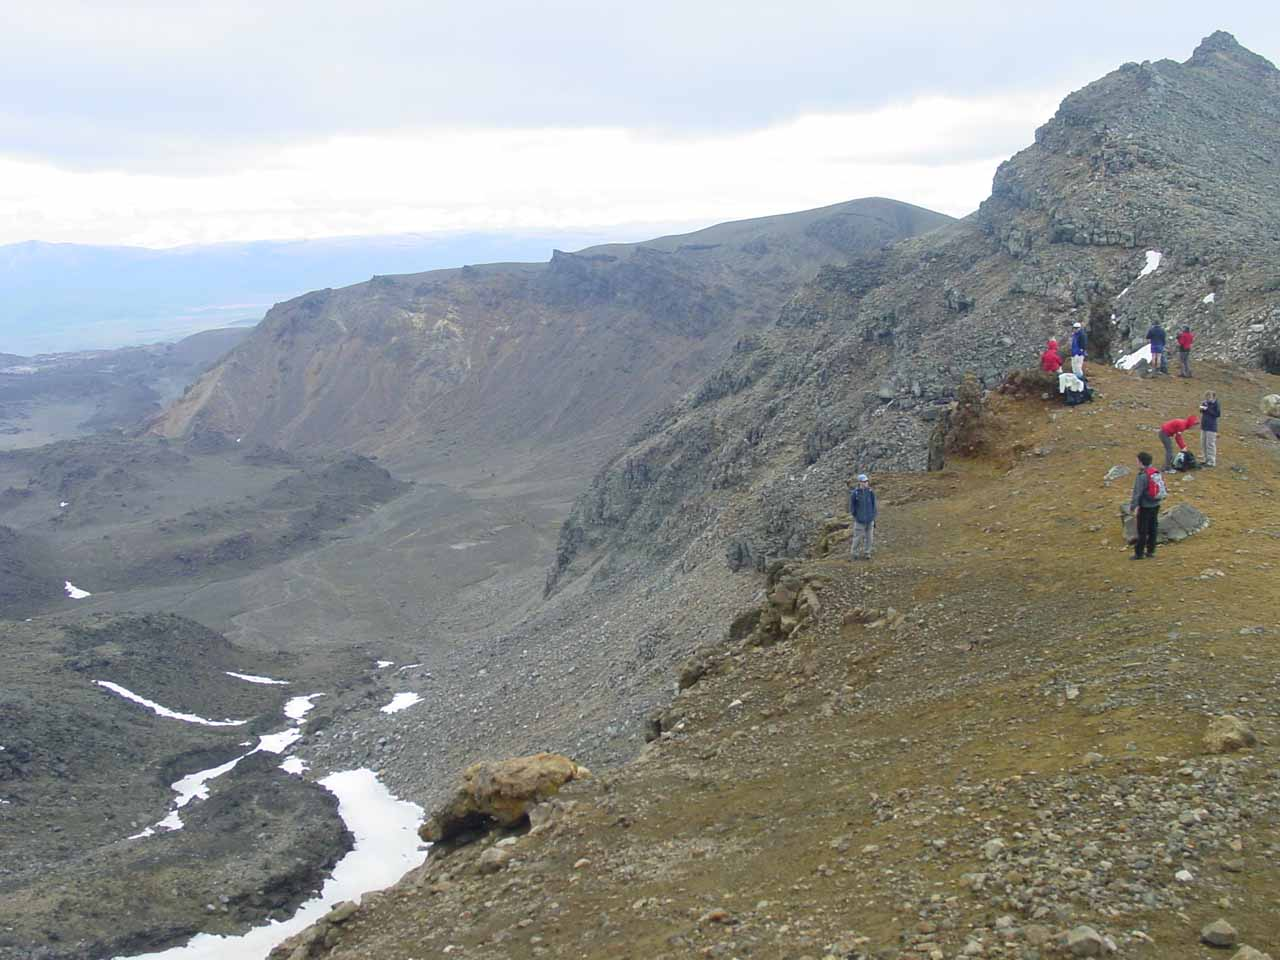 On the edge of another crater with some other people looking on along the Tongariro Crossing